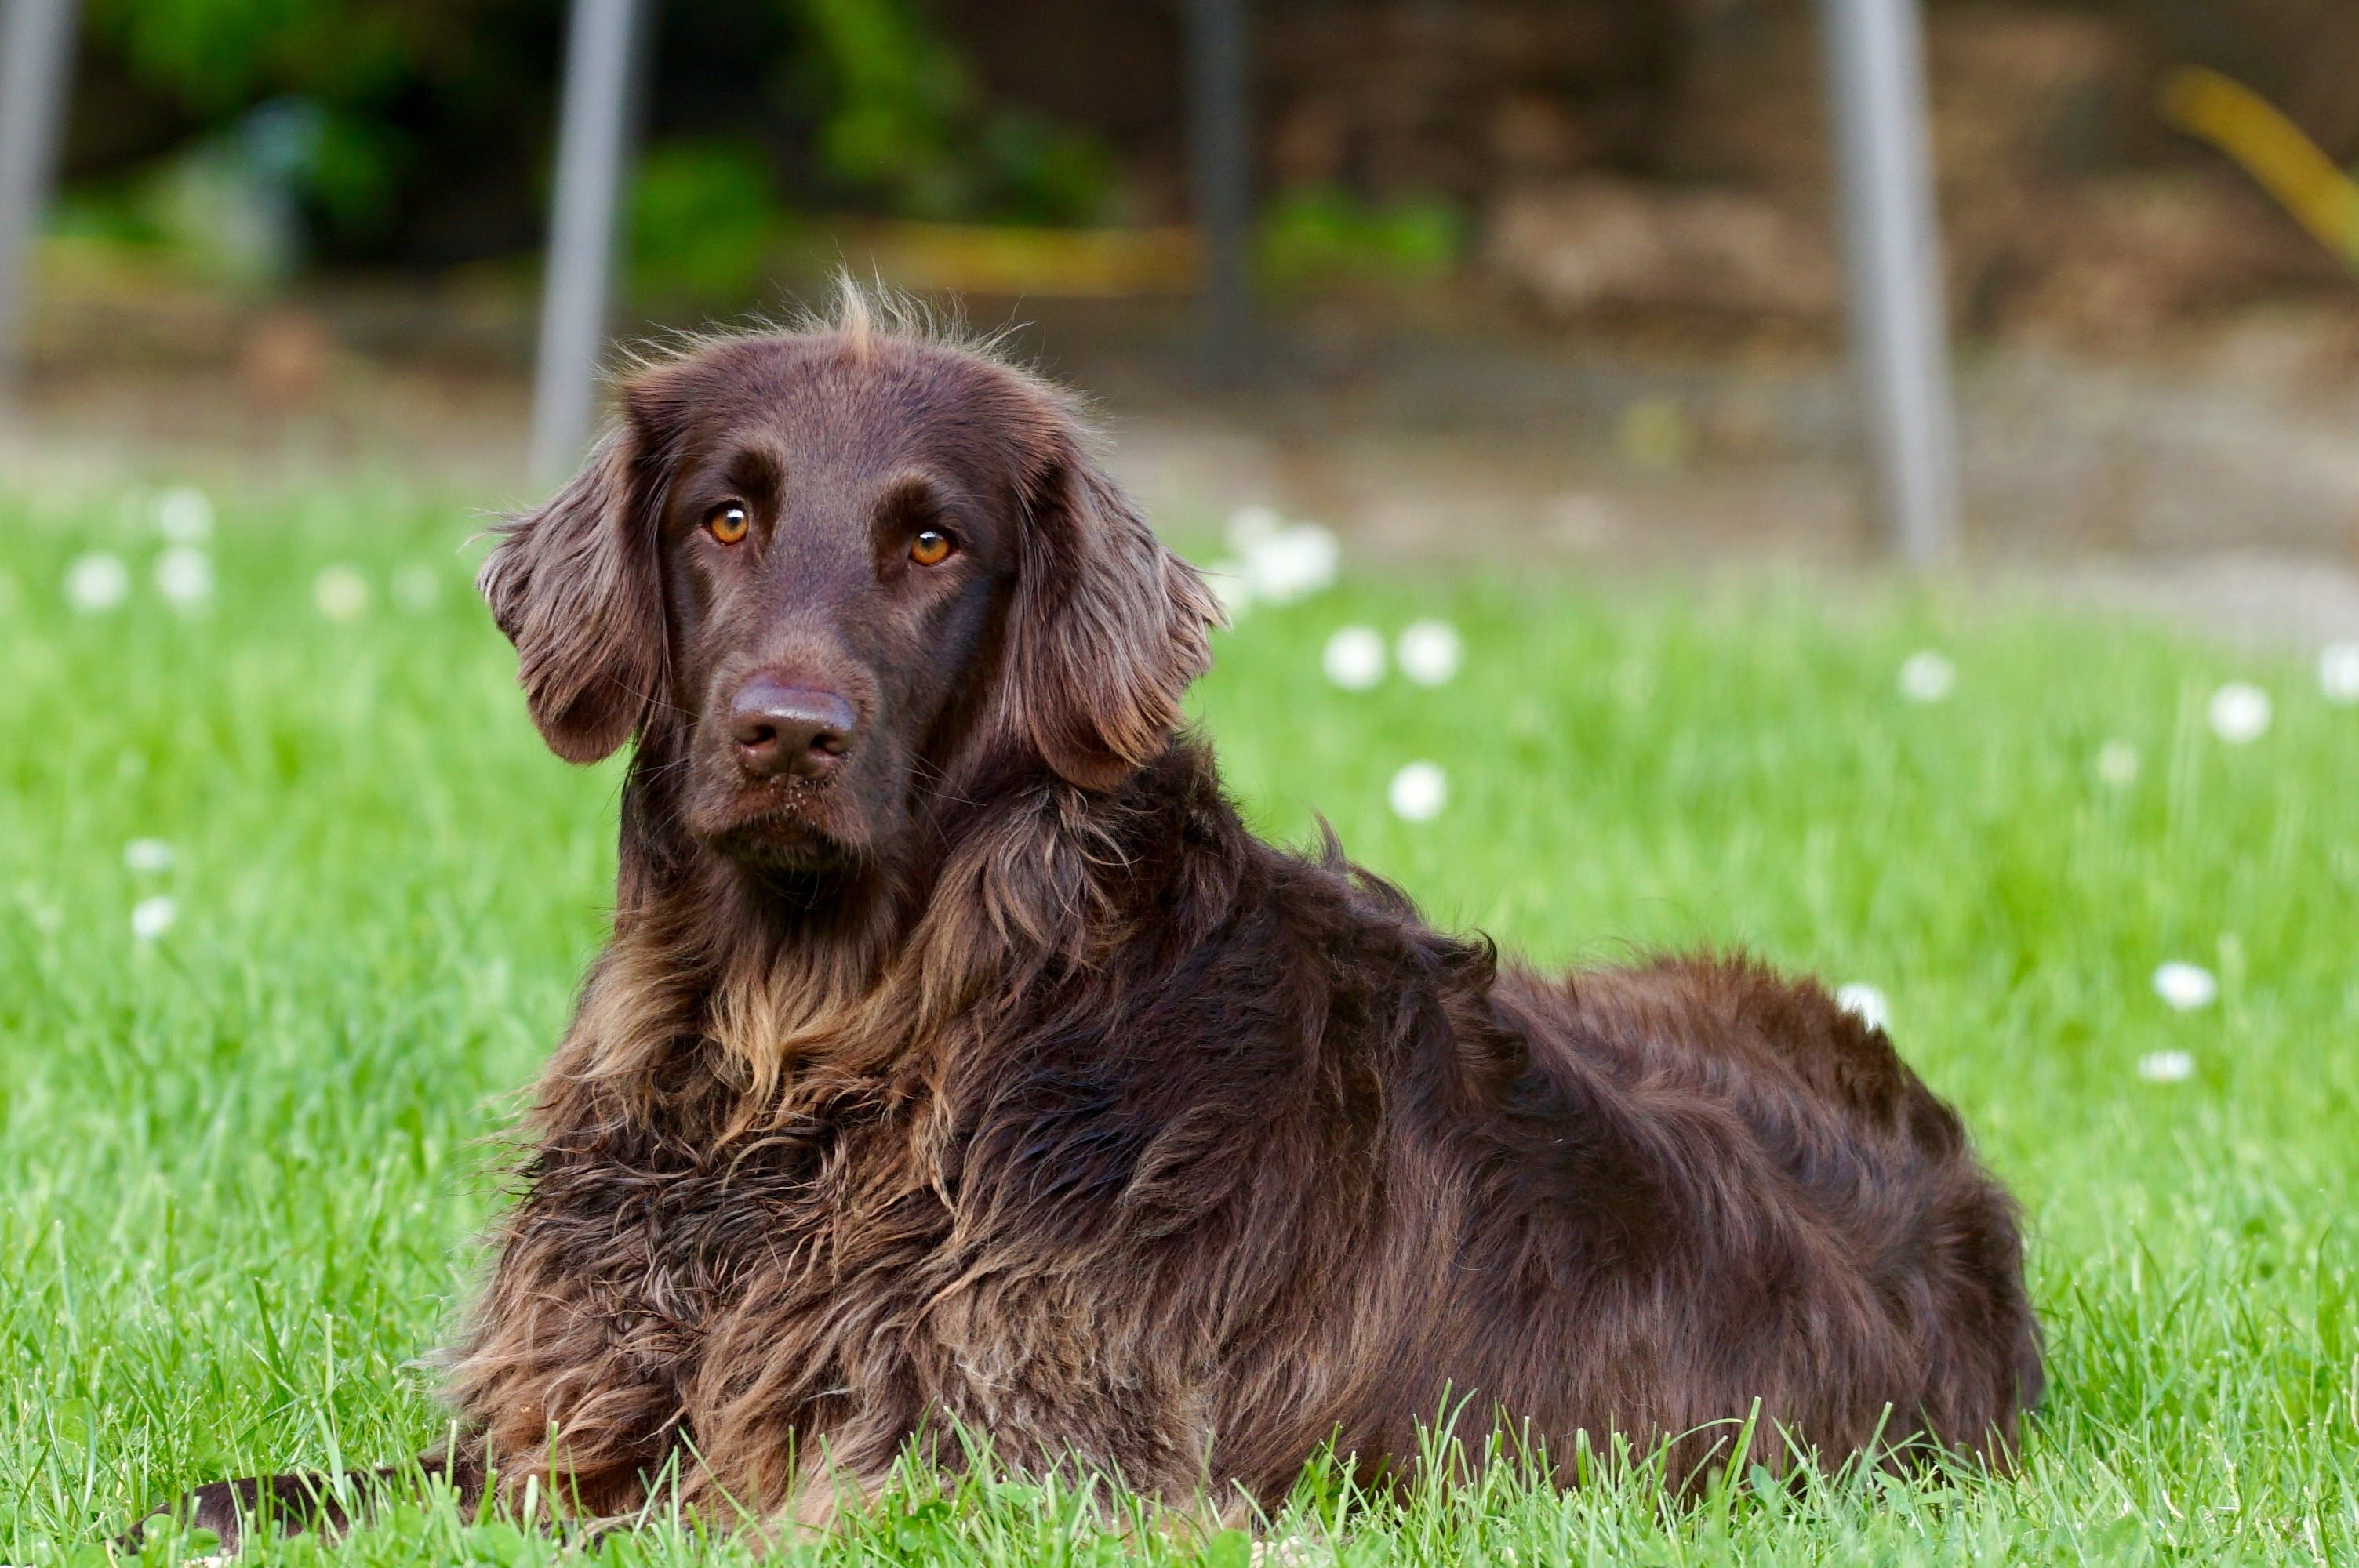 Adult Flat-coated Retriever Lying on Lawn Grass Selective Focus Photography